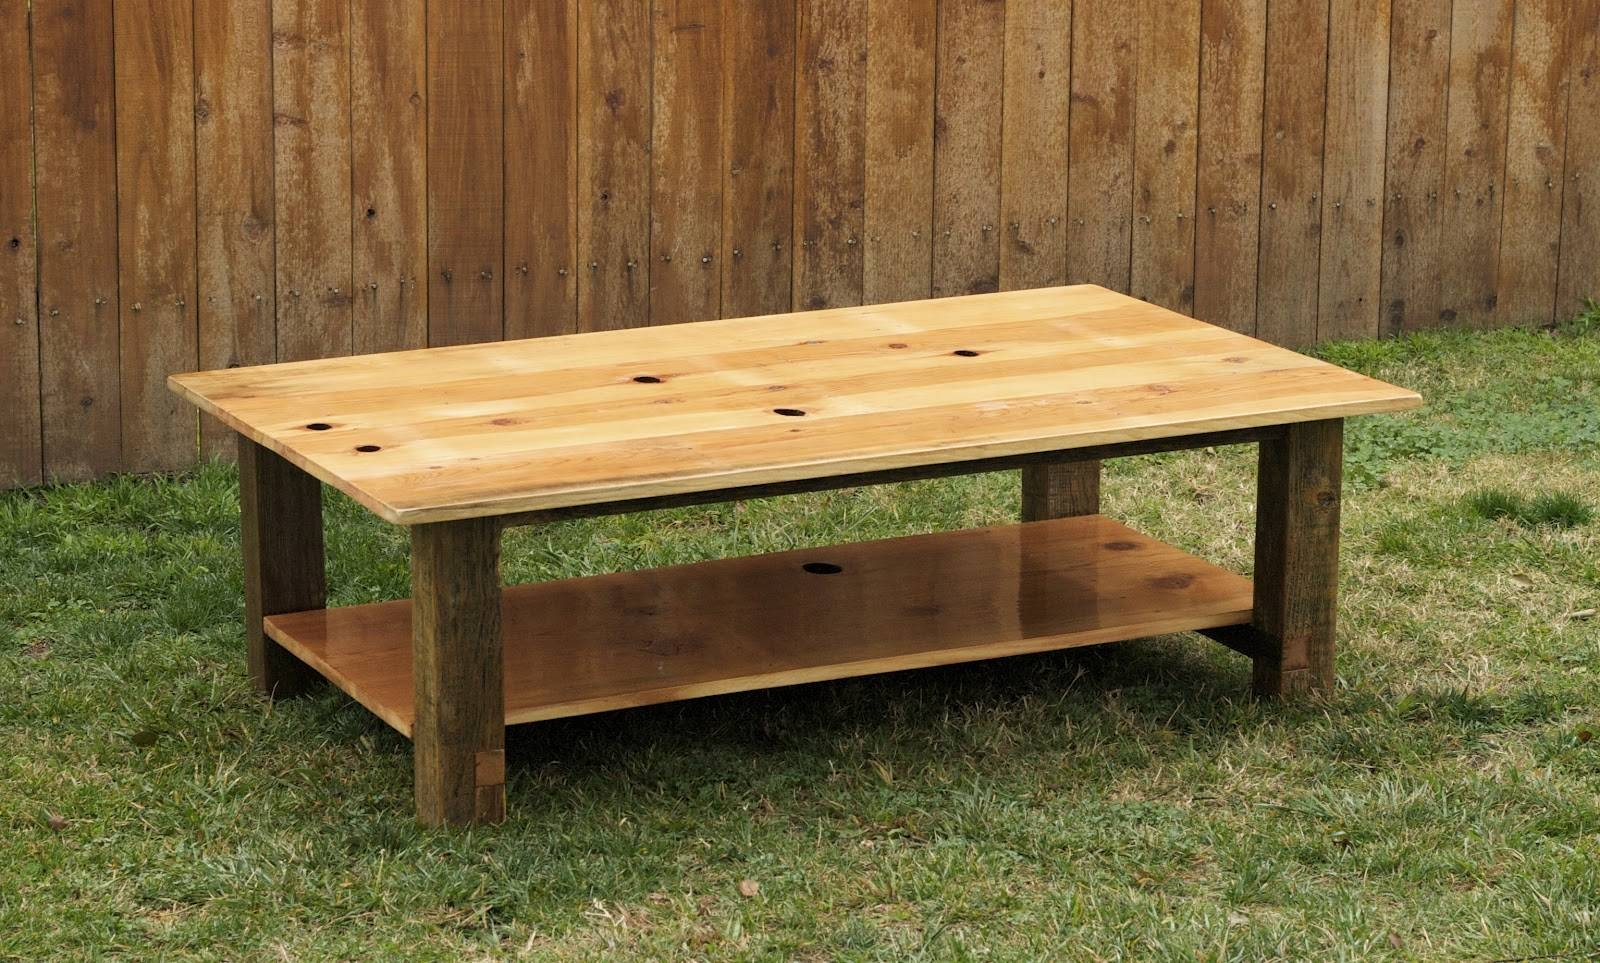 Arbor Exchange | Reclaimed Wood Furniture: Sugar Pine Coffee Table Inside Old Pine Coffee Tables (View 2 of 30)